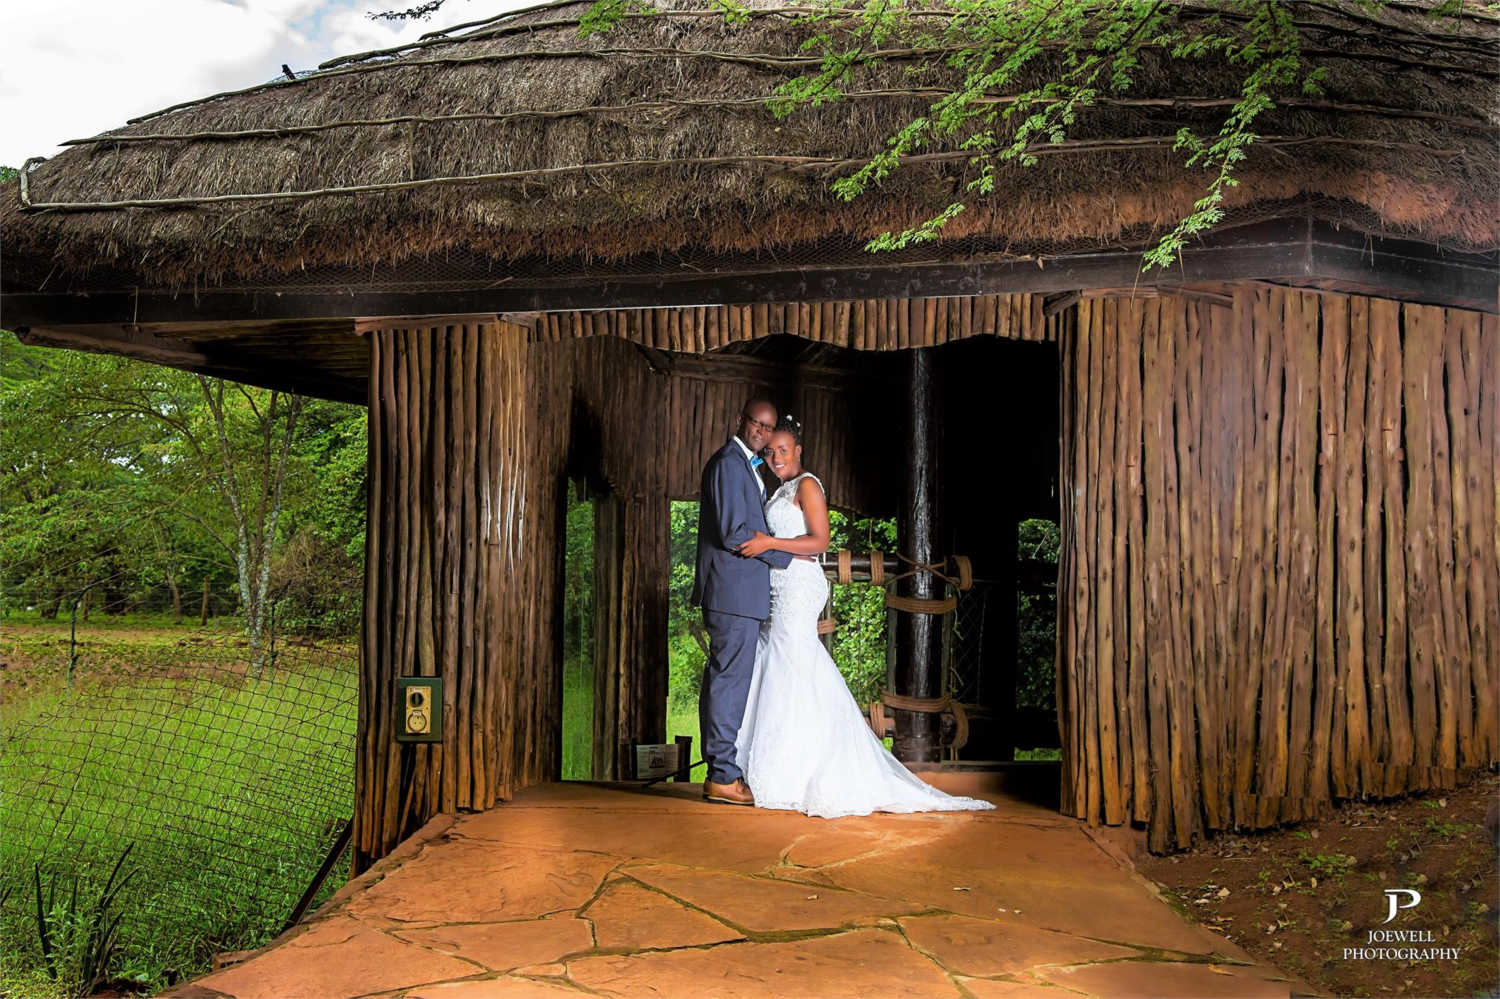 ESTHER + EVANS - Joewell Photography - Photography and video company in Nairobi, Kenya